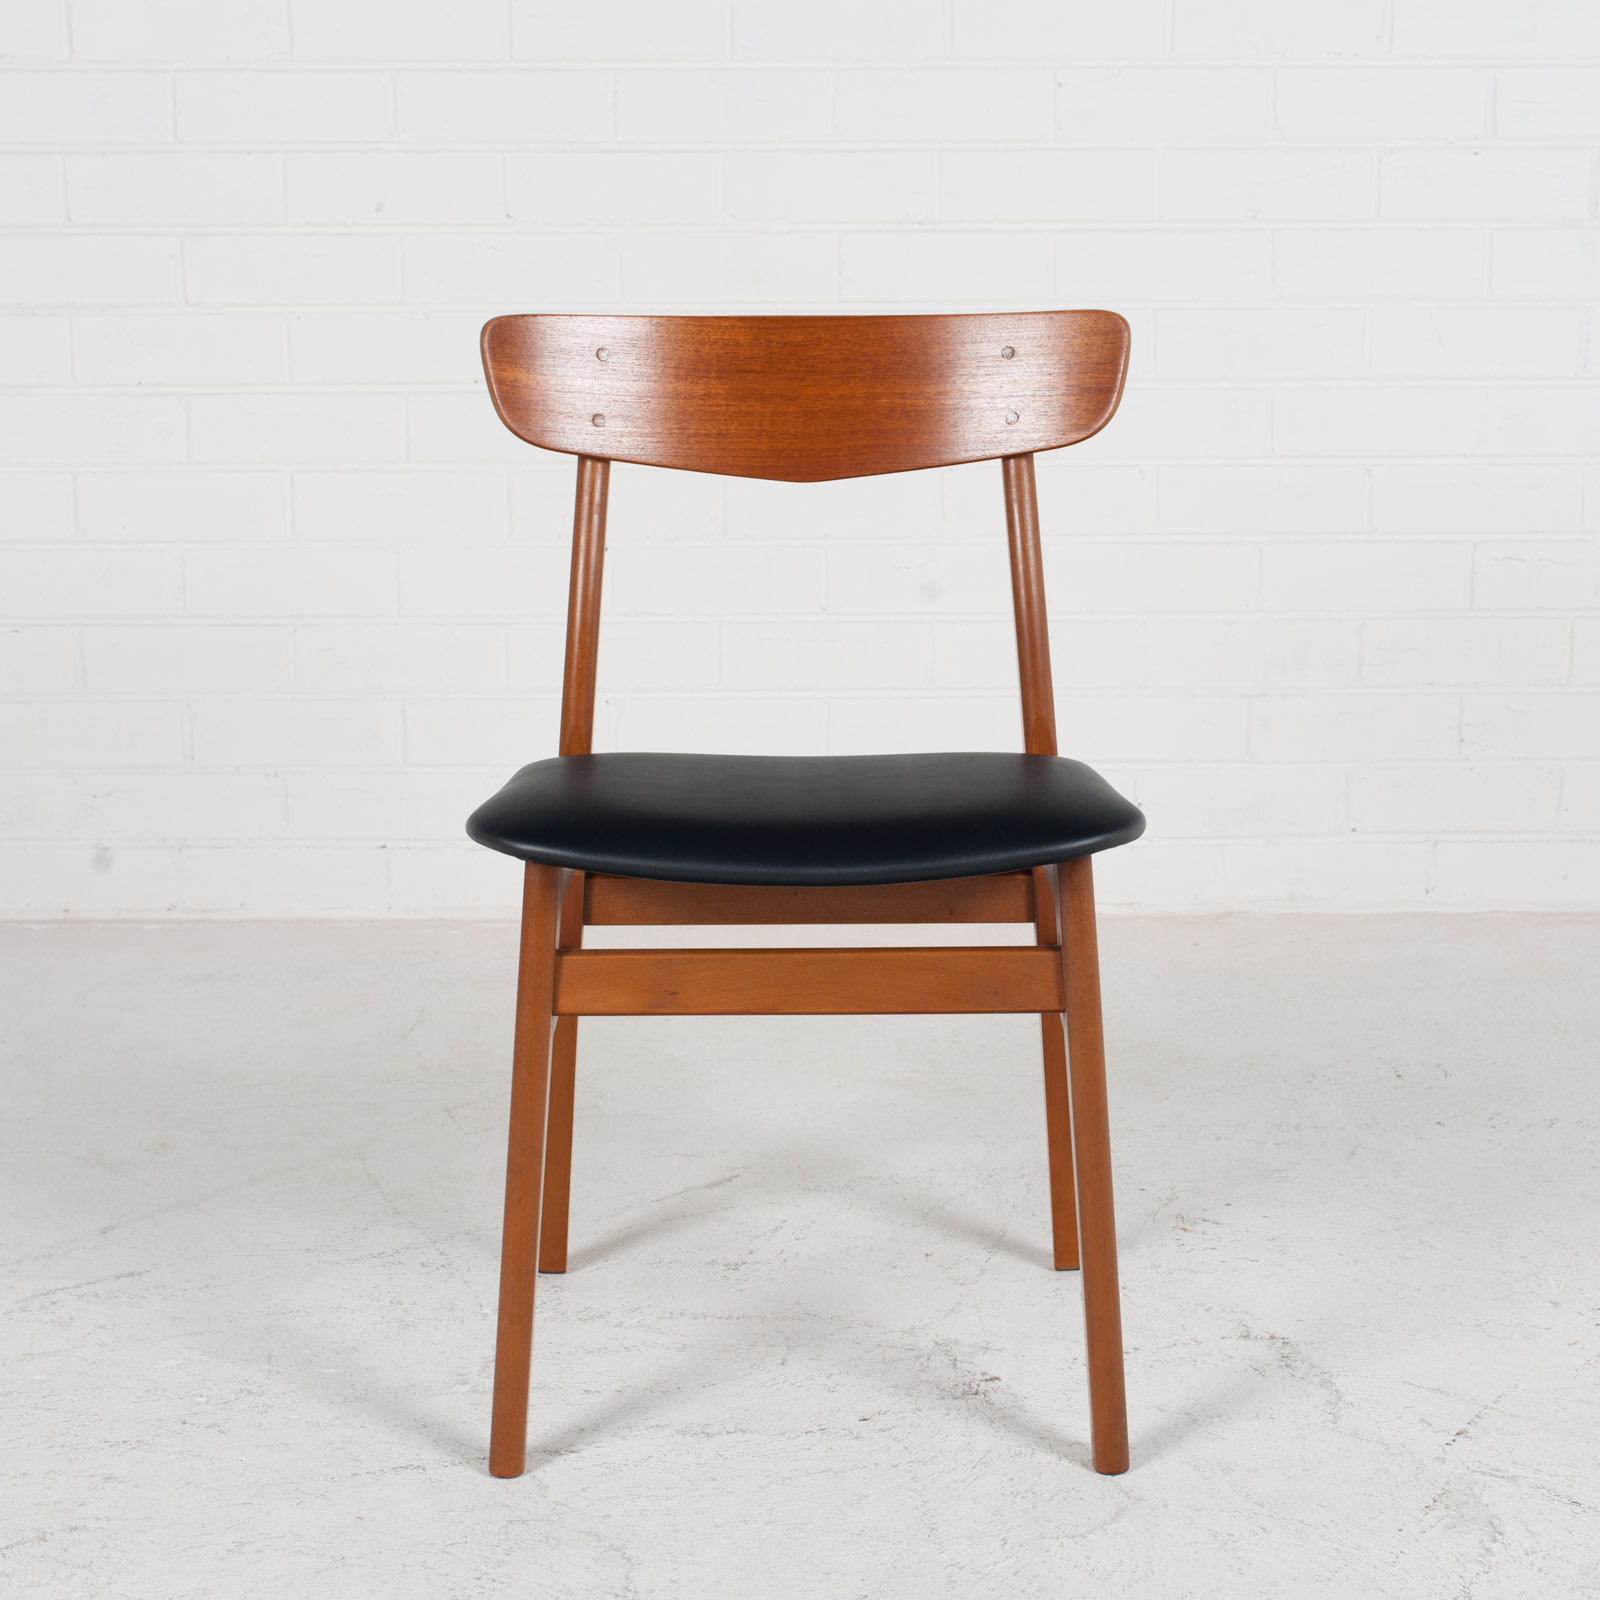 V Back Dining Chairs By Farstrup With Buttons In Teak And New Vinyl Upholstery 1960s Denmark 02